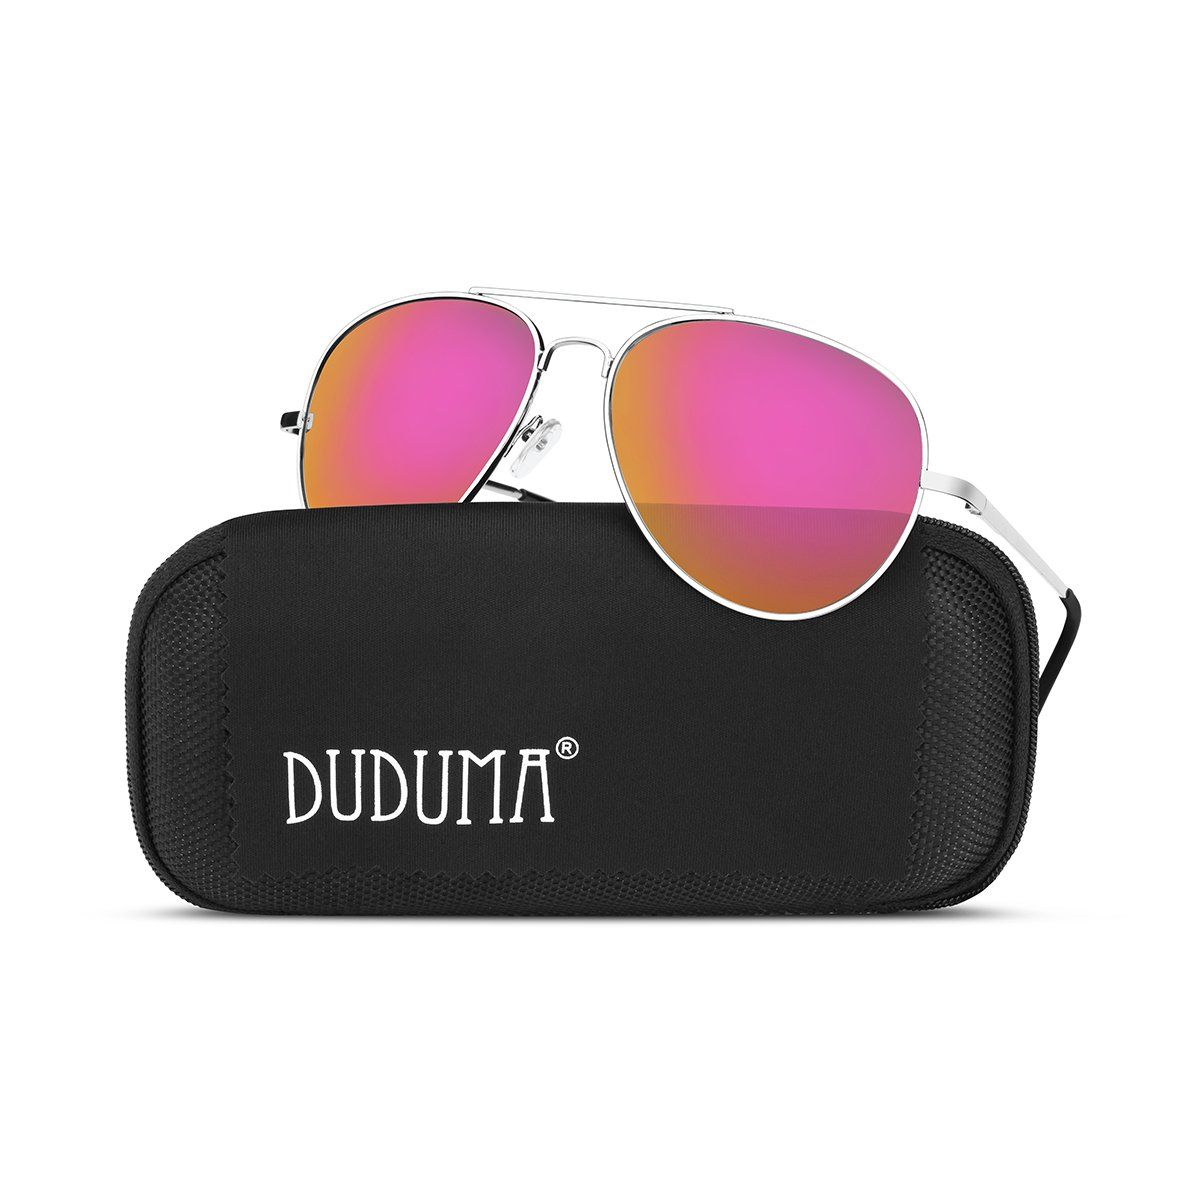 Duduma Premium Full Mirrored Aviator Sunglasses w/Flash Mirror Lens Uv400 (Silver frame/Pink mirror lens) by Duduma